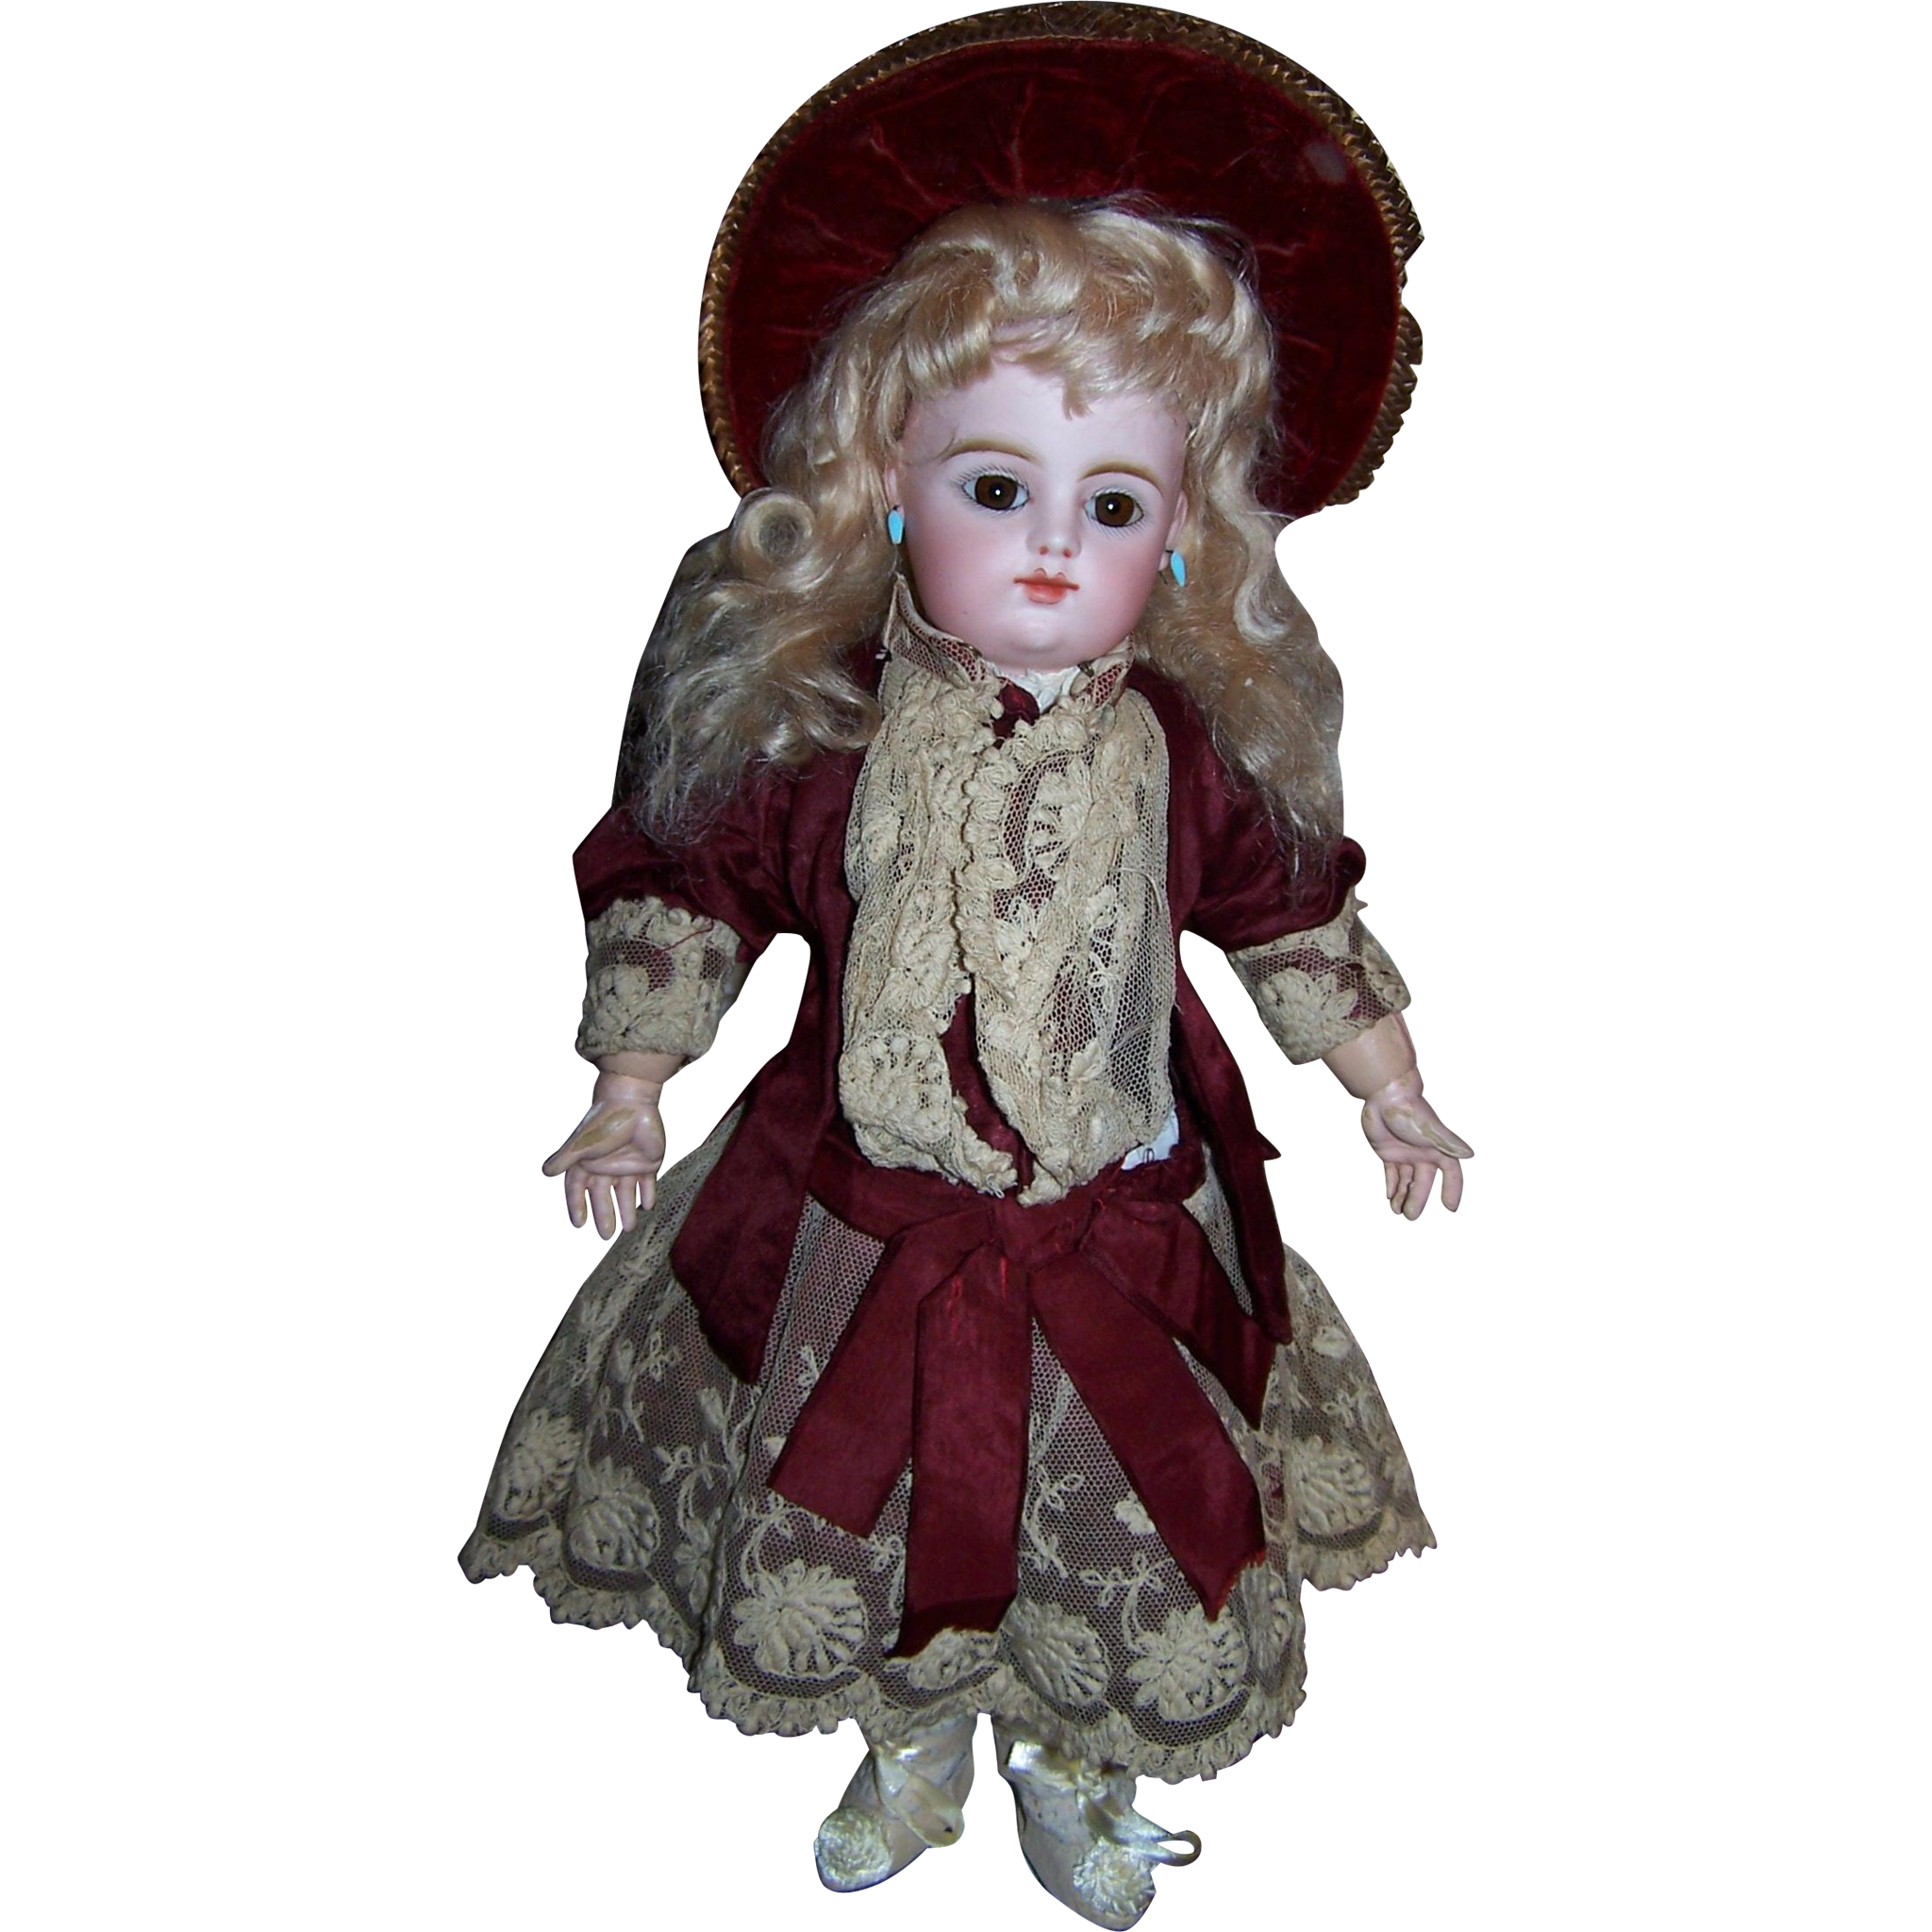 Antique french doll dress original couturier outfit circa 1885